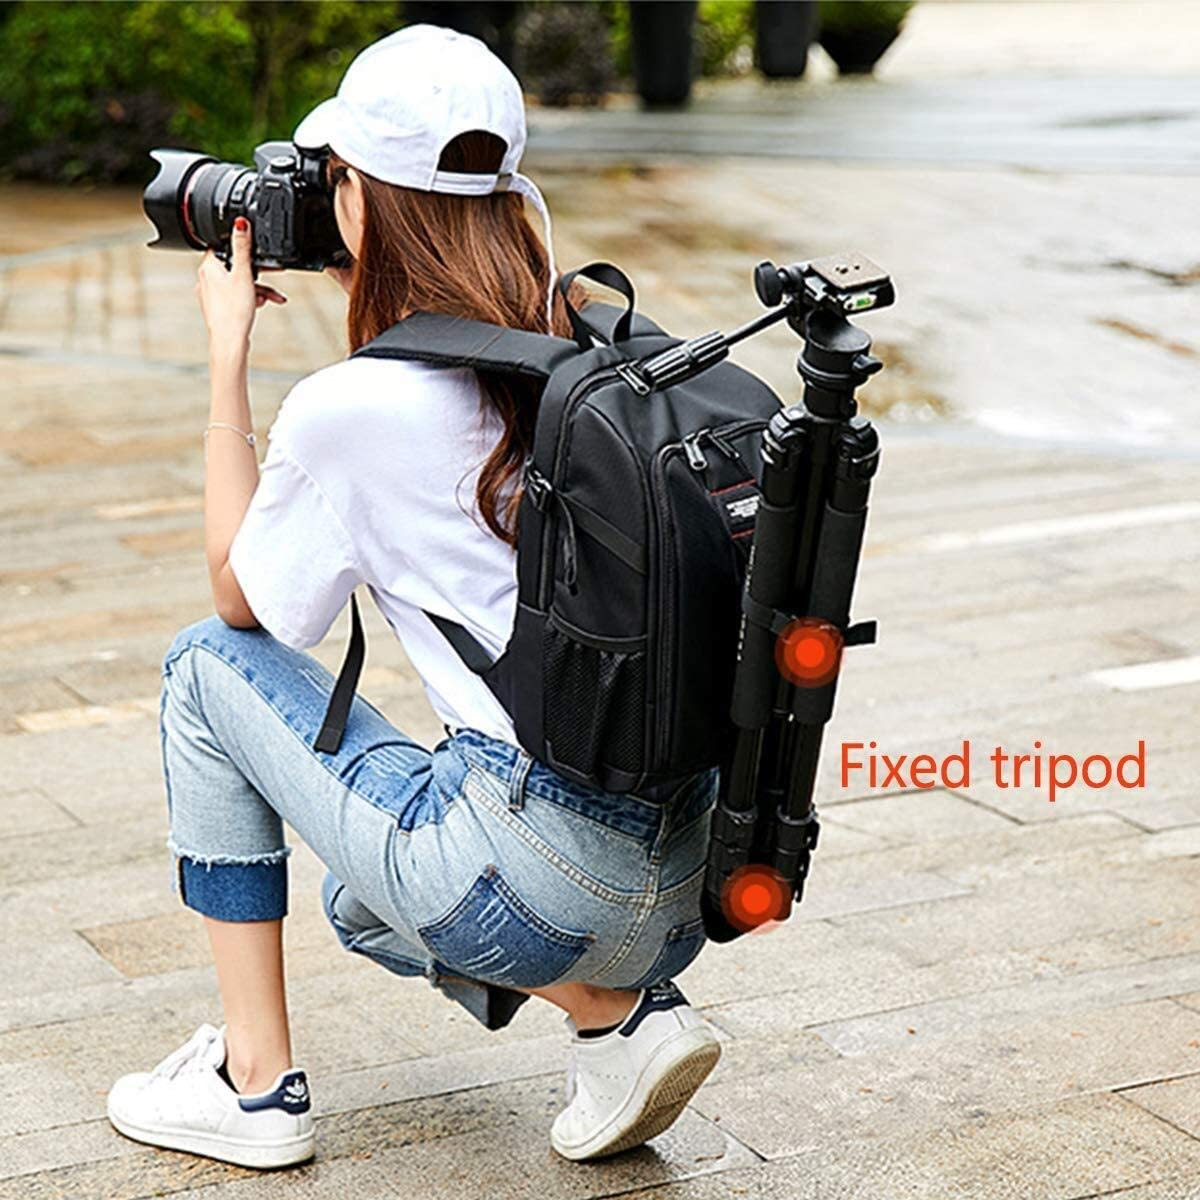 or Professional Shockproof Leisure Travel Bag Outdoor Camera Rucksack With Rain Cover For Laptop Tripod Lens And Accessories Outdoor camping folding bed Waterproof Large Capacity SLR Camera Backpack